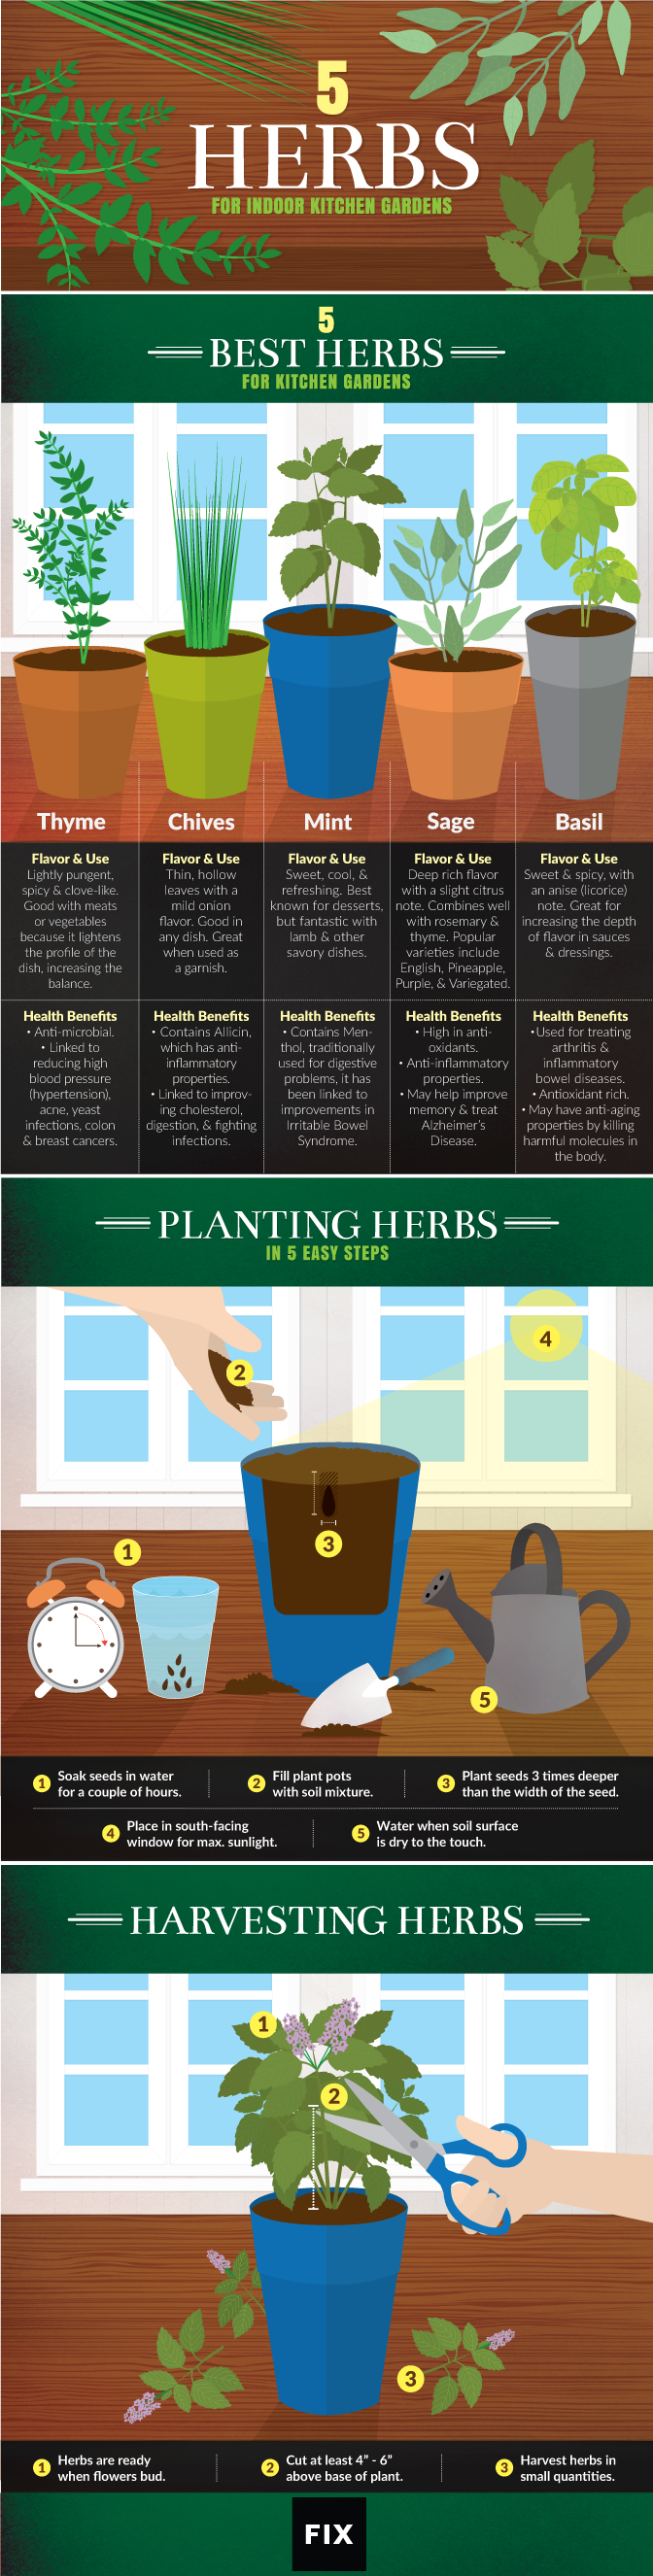 Kitchen Gardener Magazine 5 Herbs For Kitchen Gardens Modern Agriculture Magazine